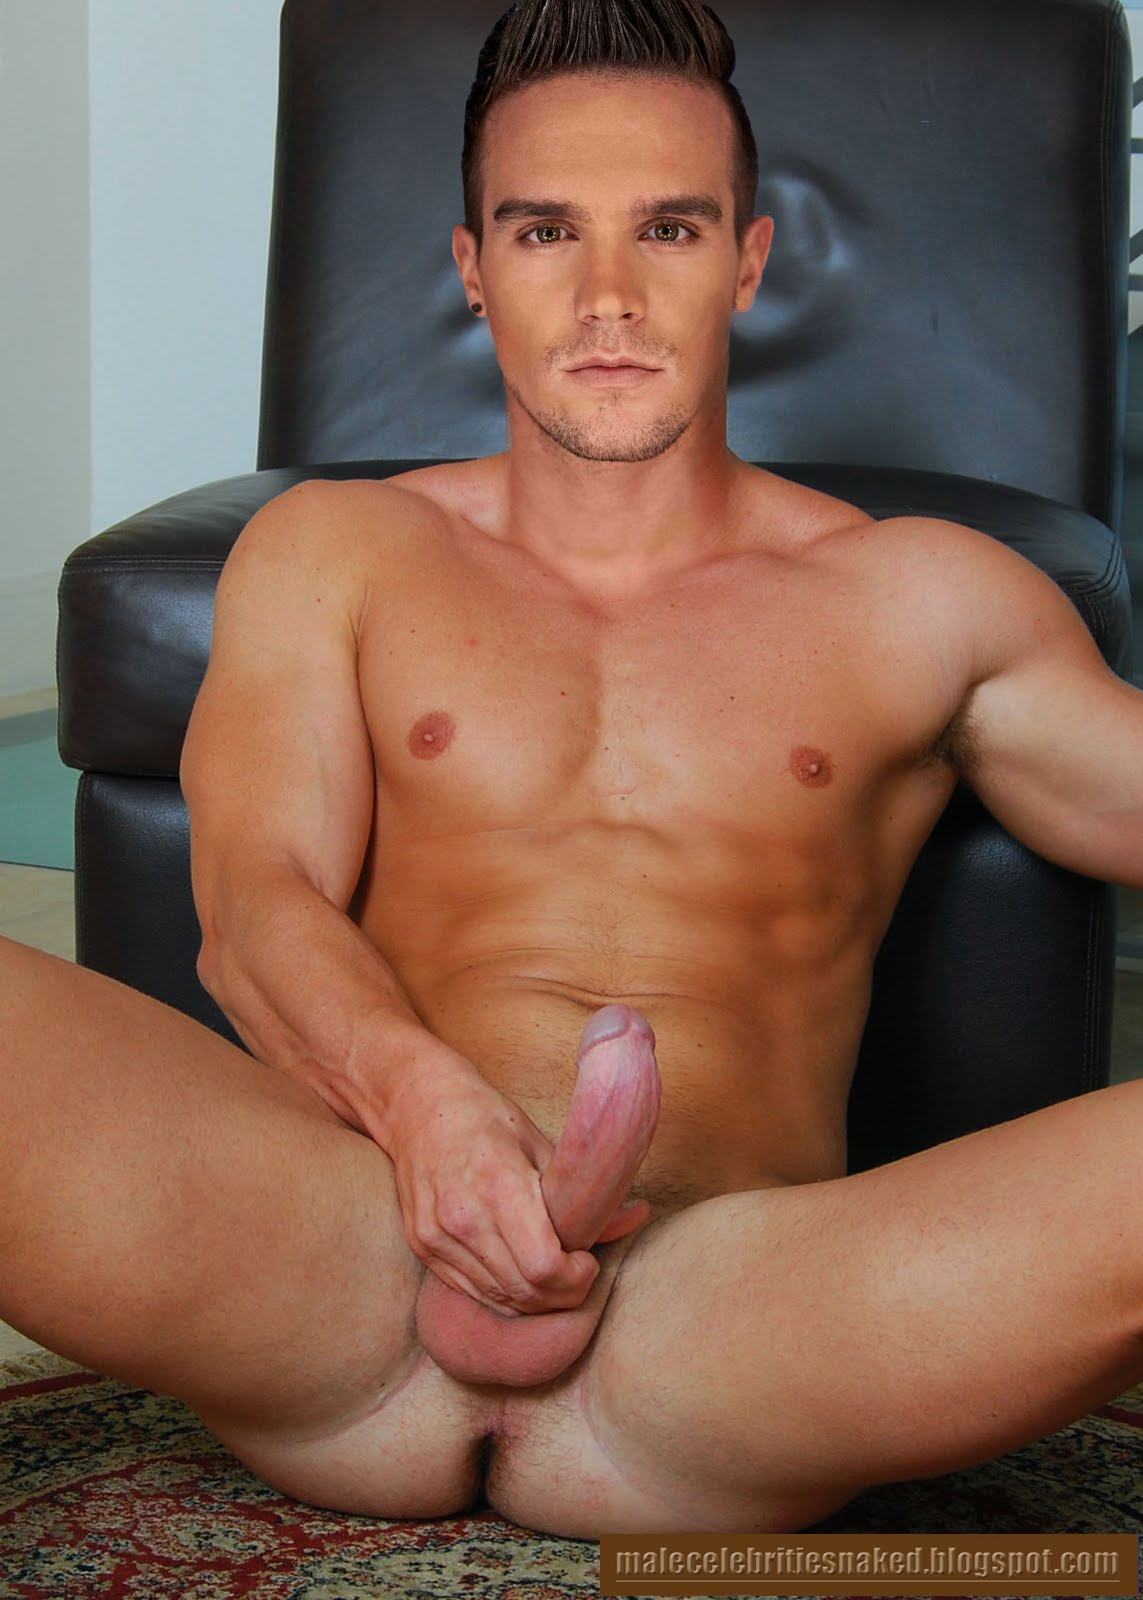 Gaz beadle from geordie shore wanking